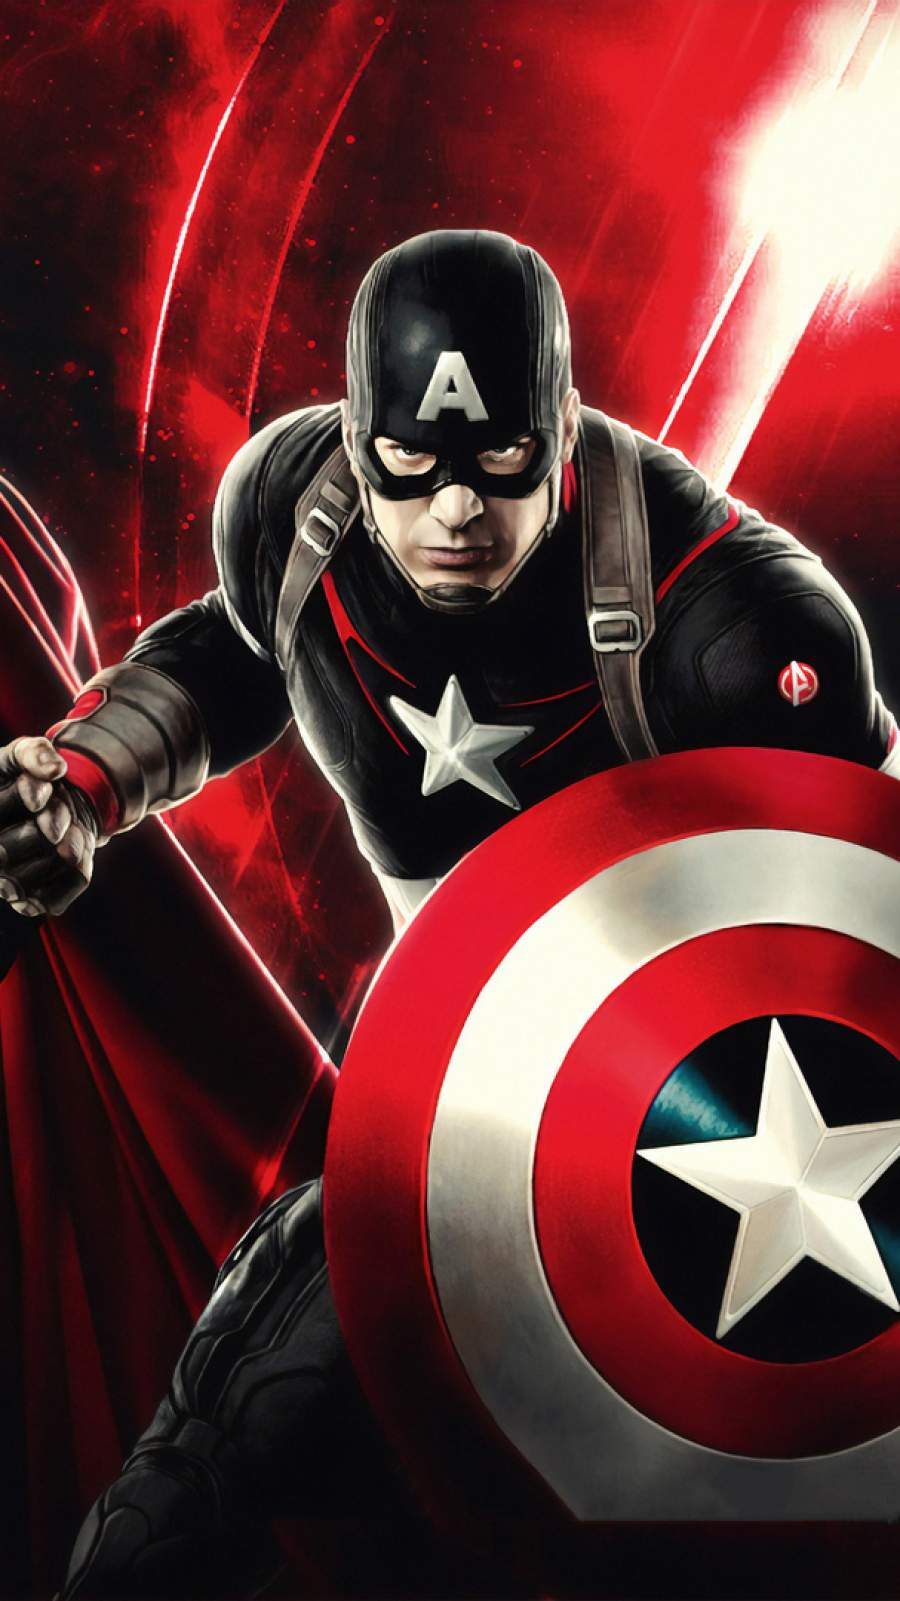 Avengers Captain America Clipart , HD Wallpaper & Backgrounds